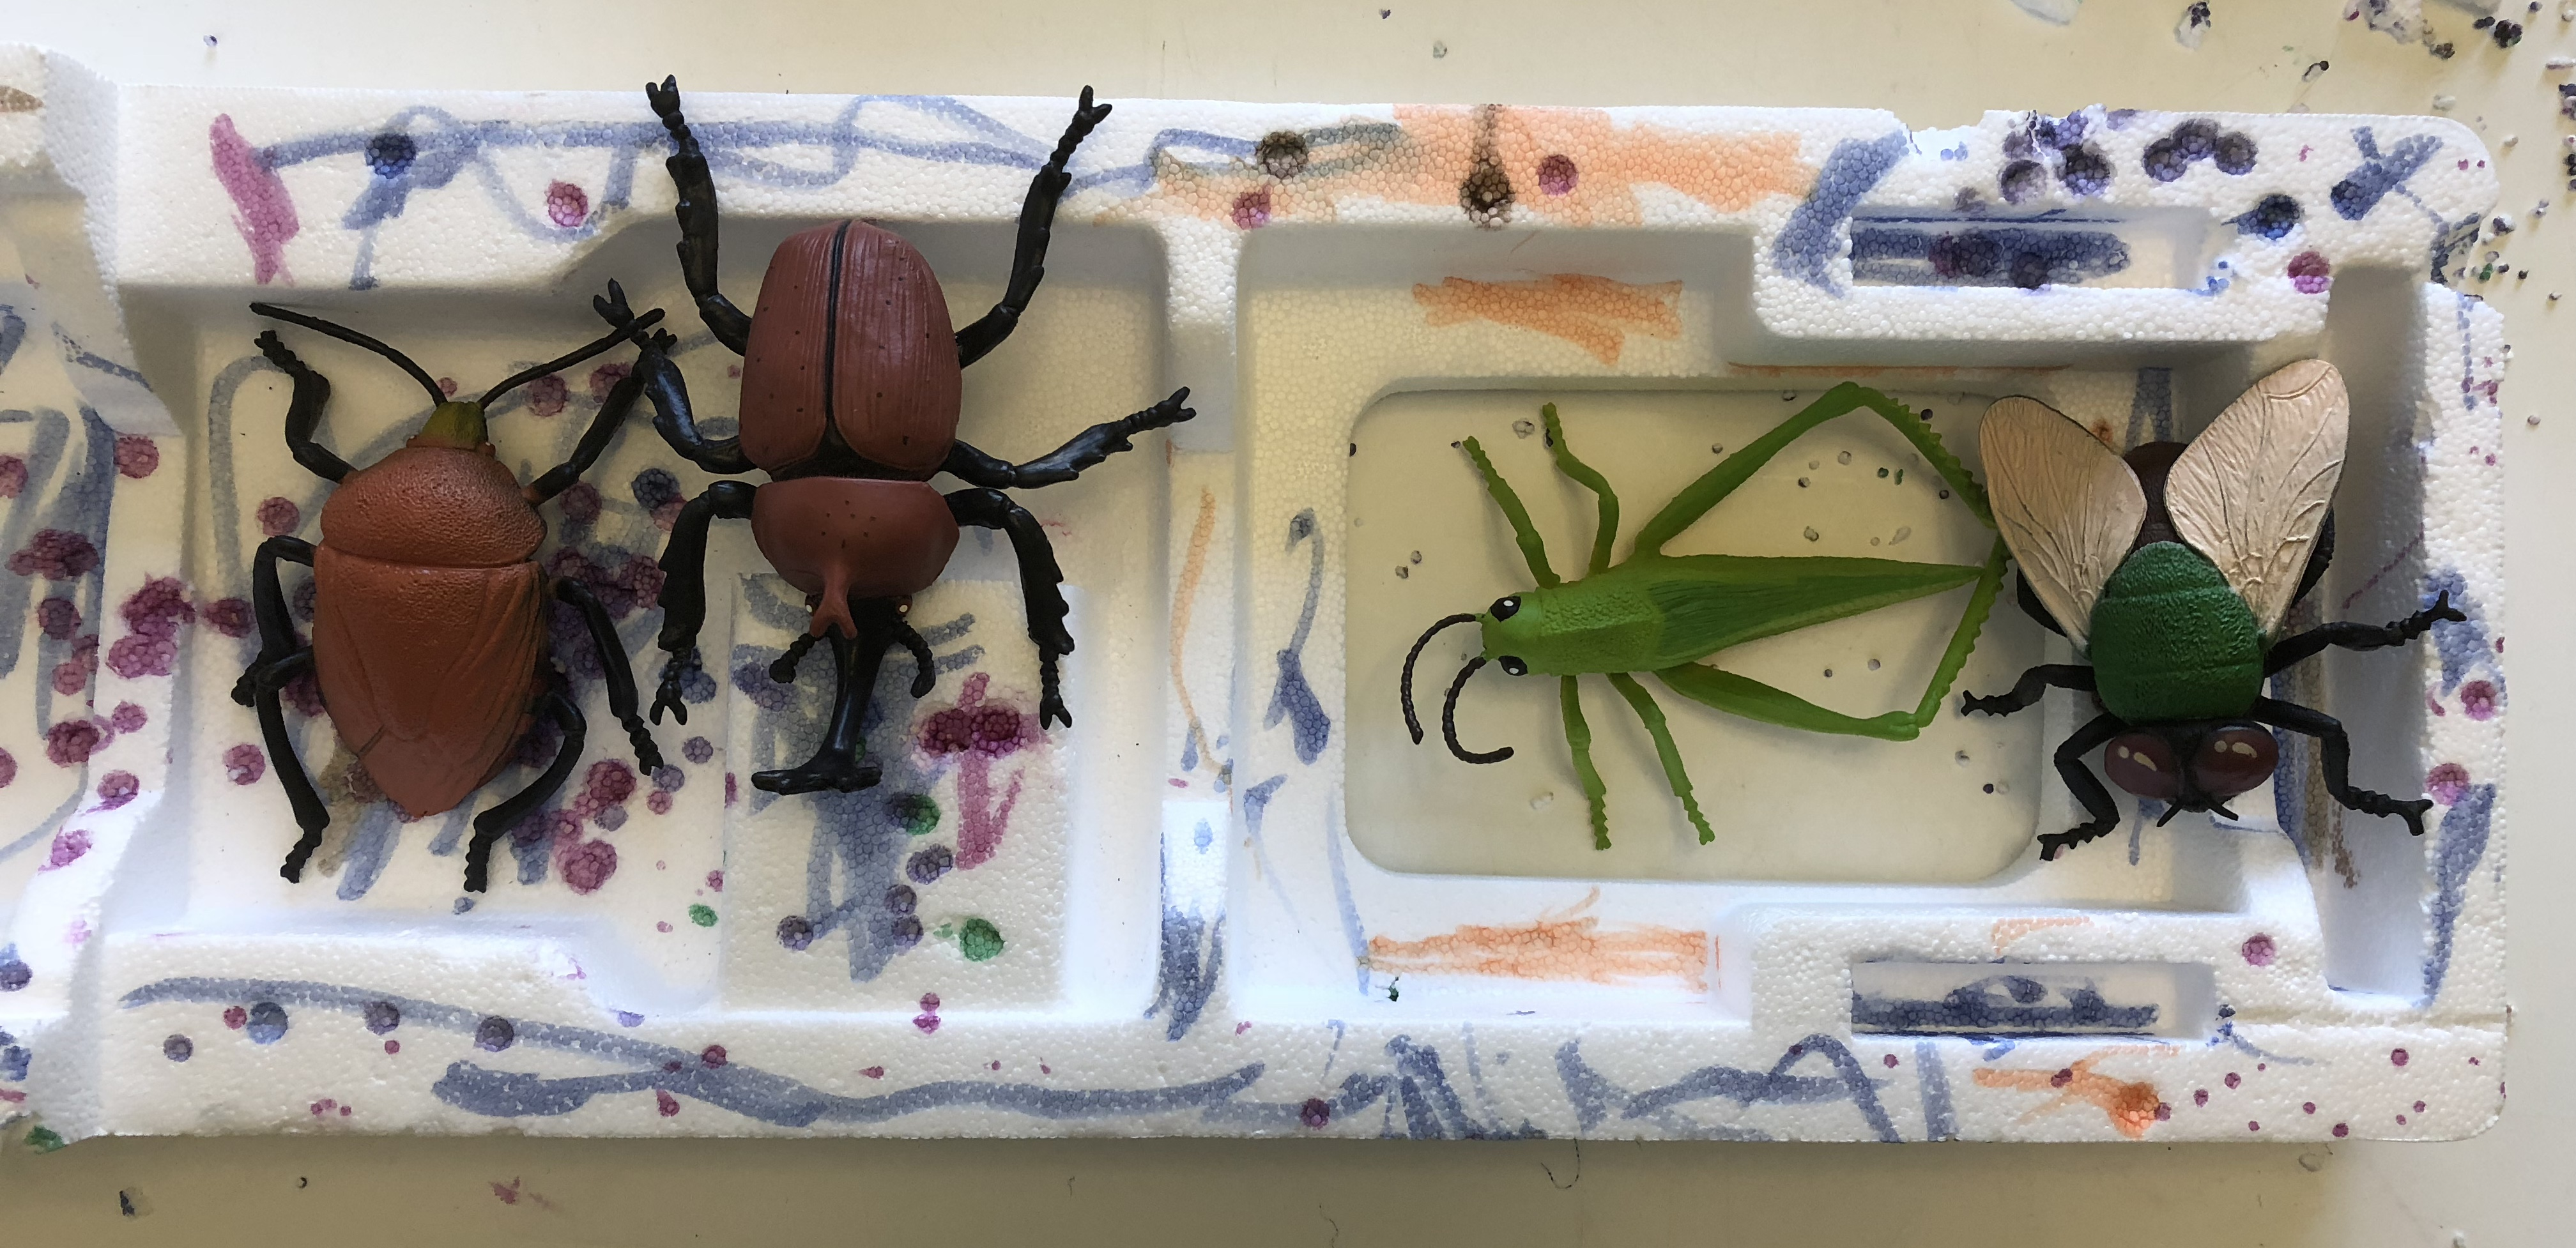 toy bug sitting in colorful styrofoam